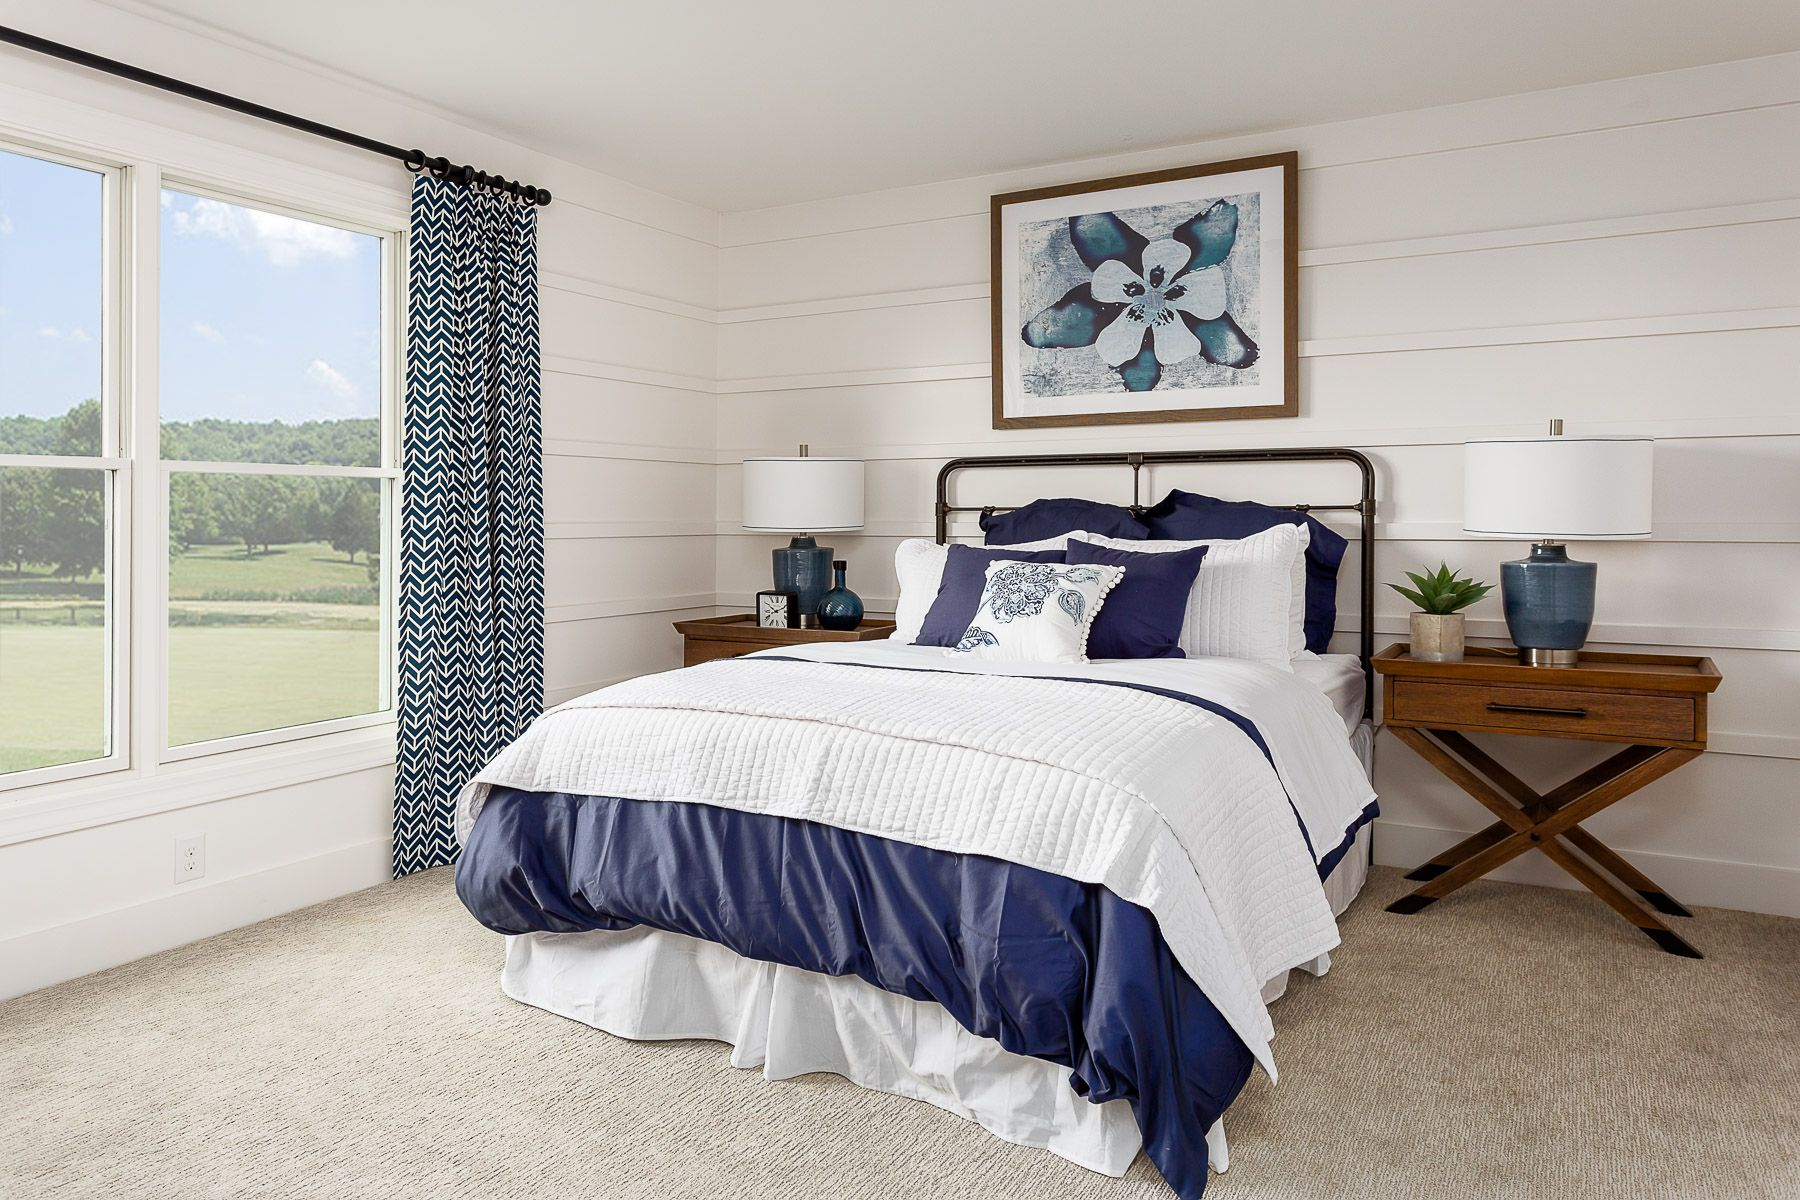 Bedroom featured in The Mayfield By Elite Built Homes LLC in Louisville, KY